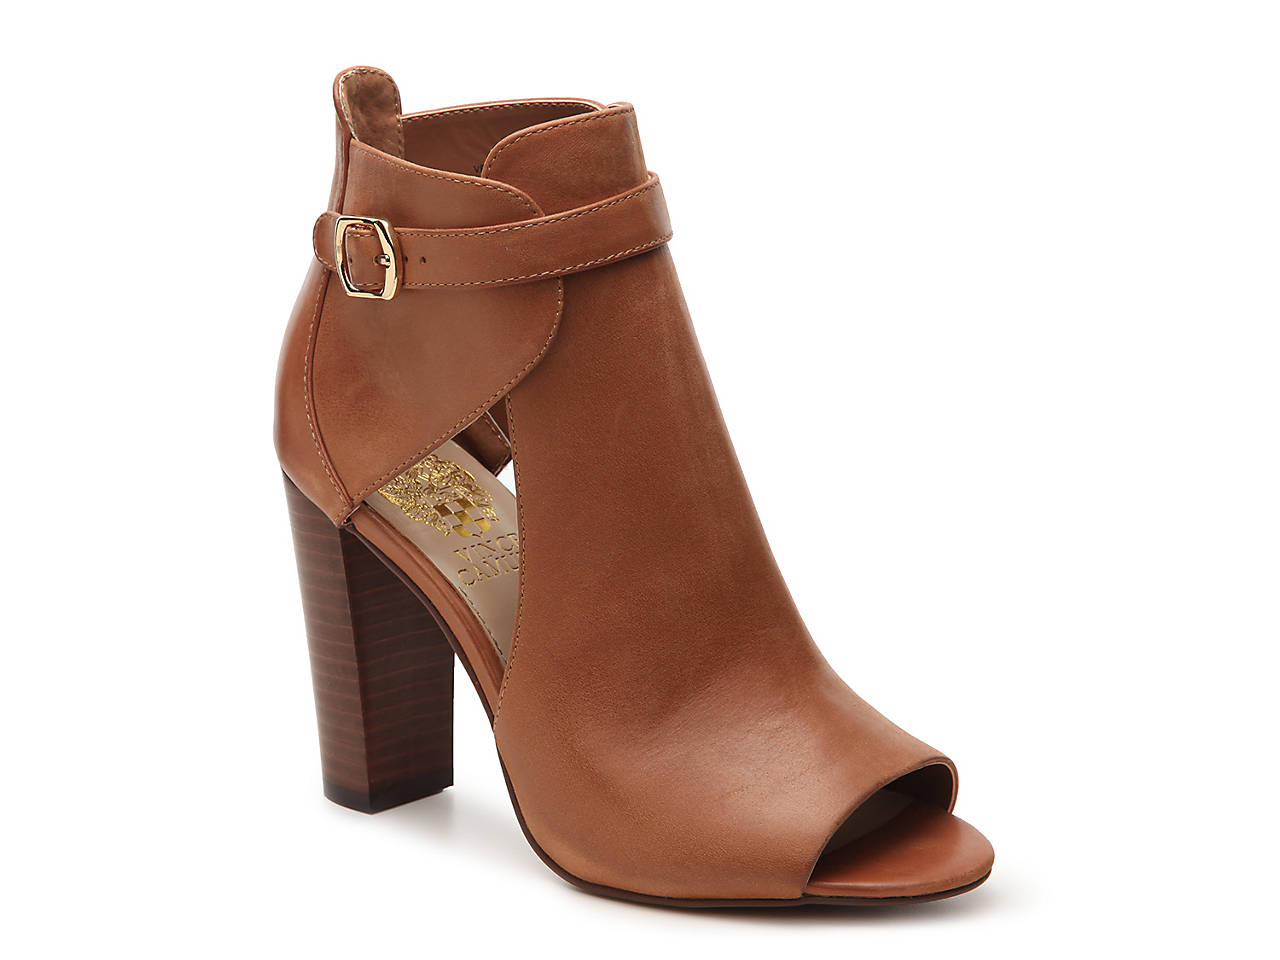 75b9cd5d9e32 Vince Camuto Venica Bootie Women s Shoes